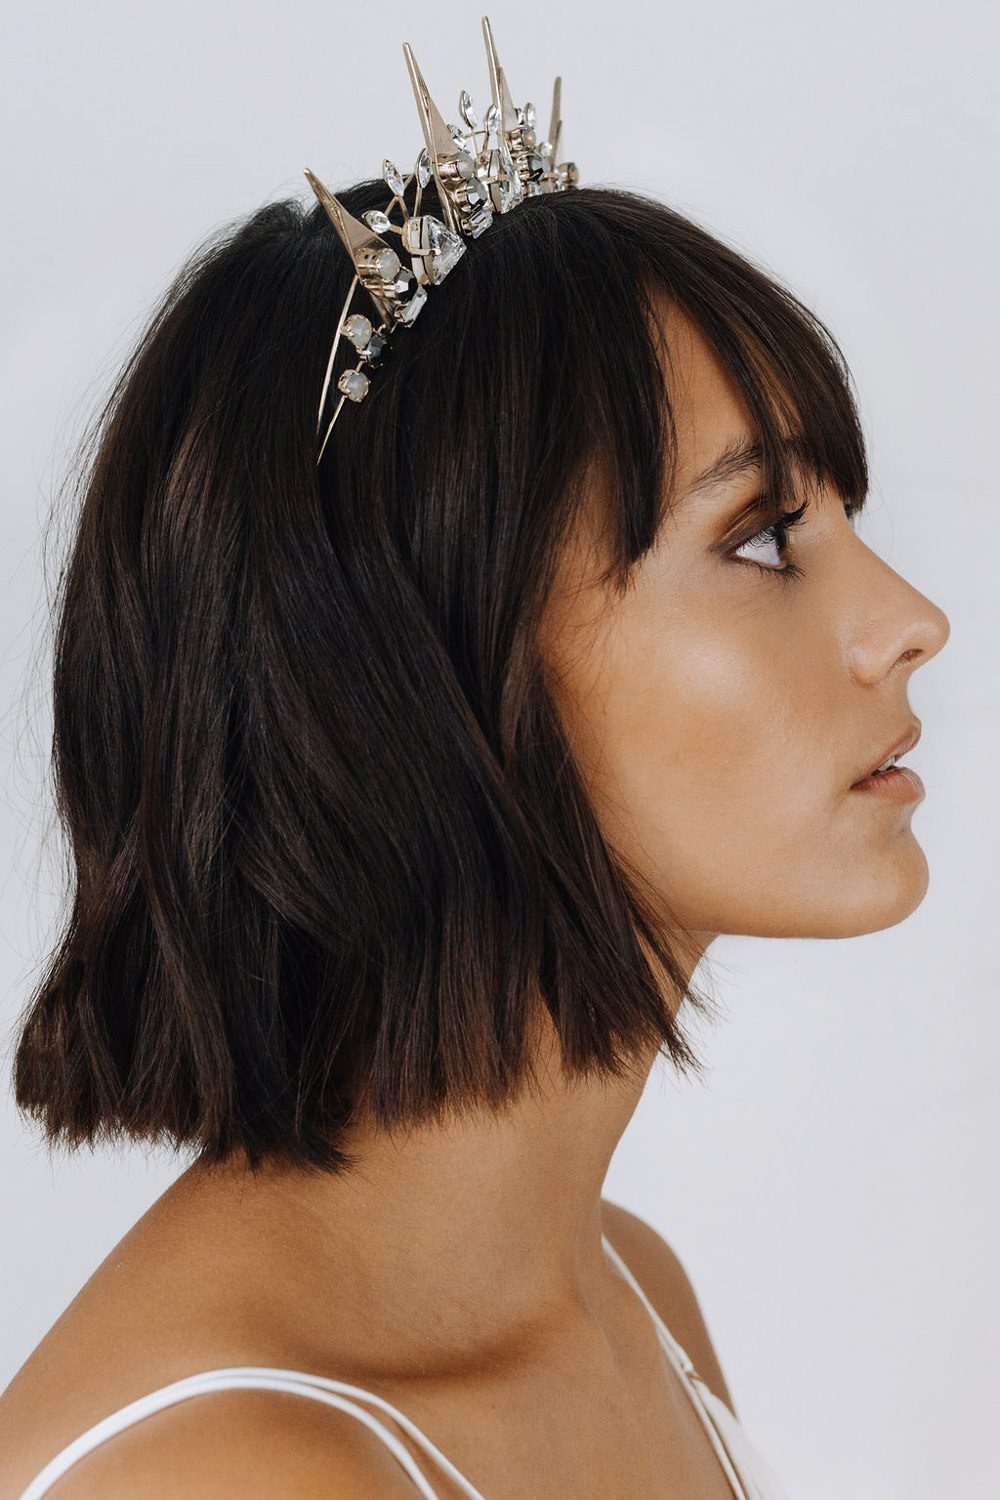 Tilly Thomas Lux Luxury wedding hair crowns and accessories #bridestyle #sparkle #weddinginspo #weddingstyle